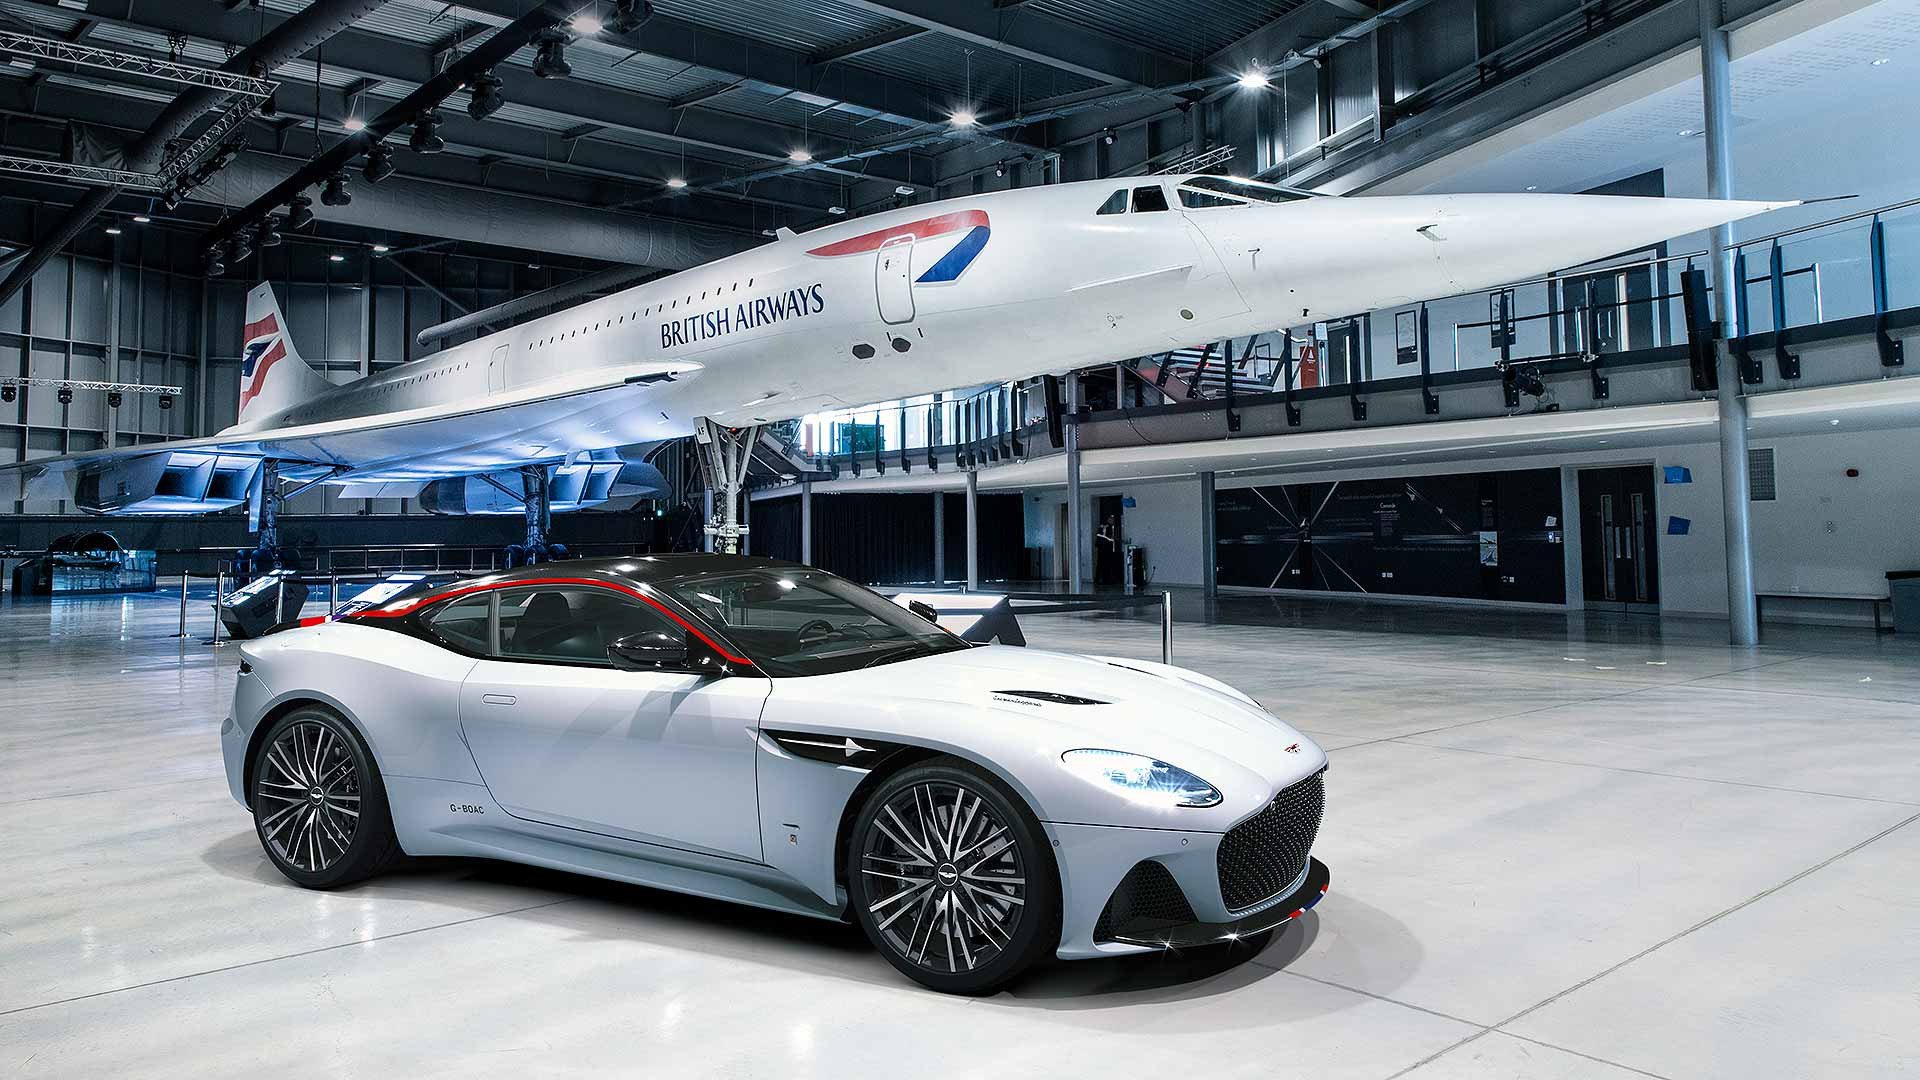 Aston Martin creates ultra-exclusive DBS Superleggera Concorde Edition